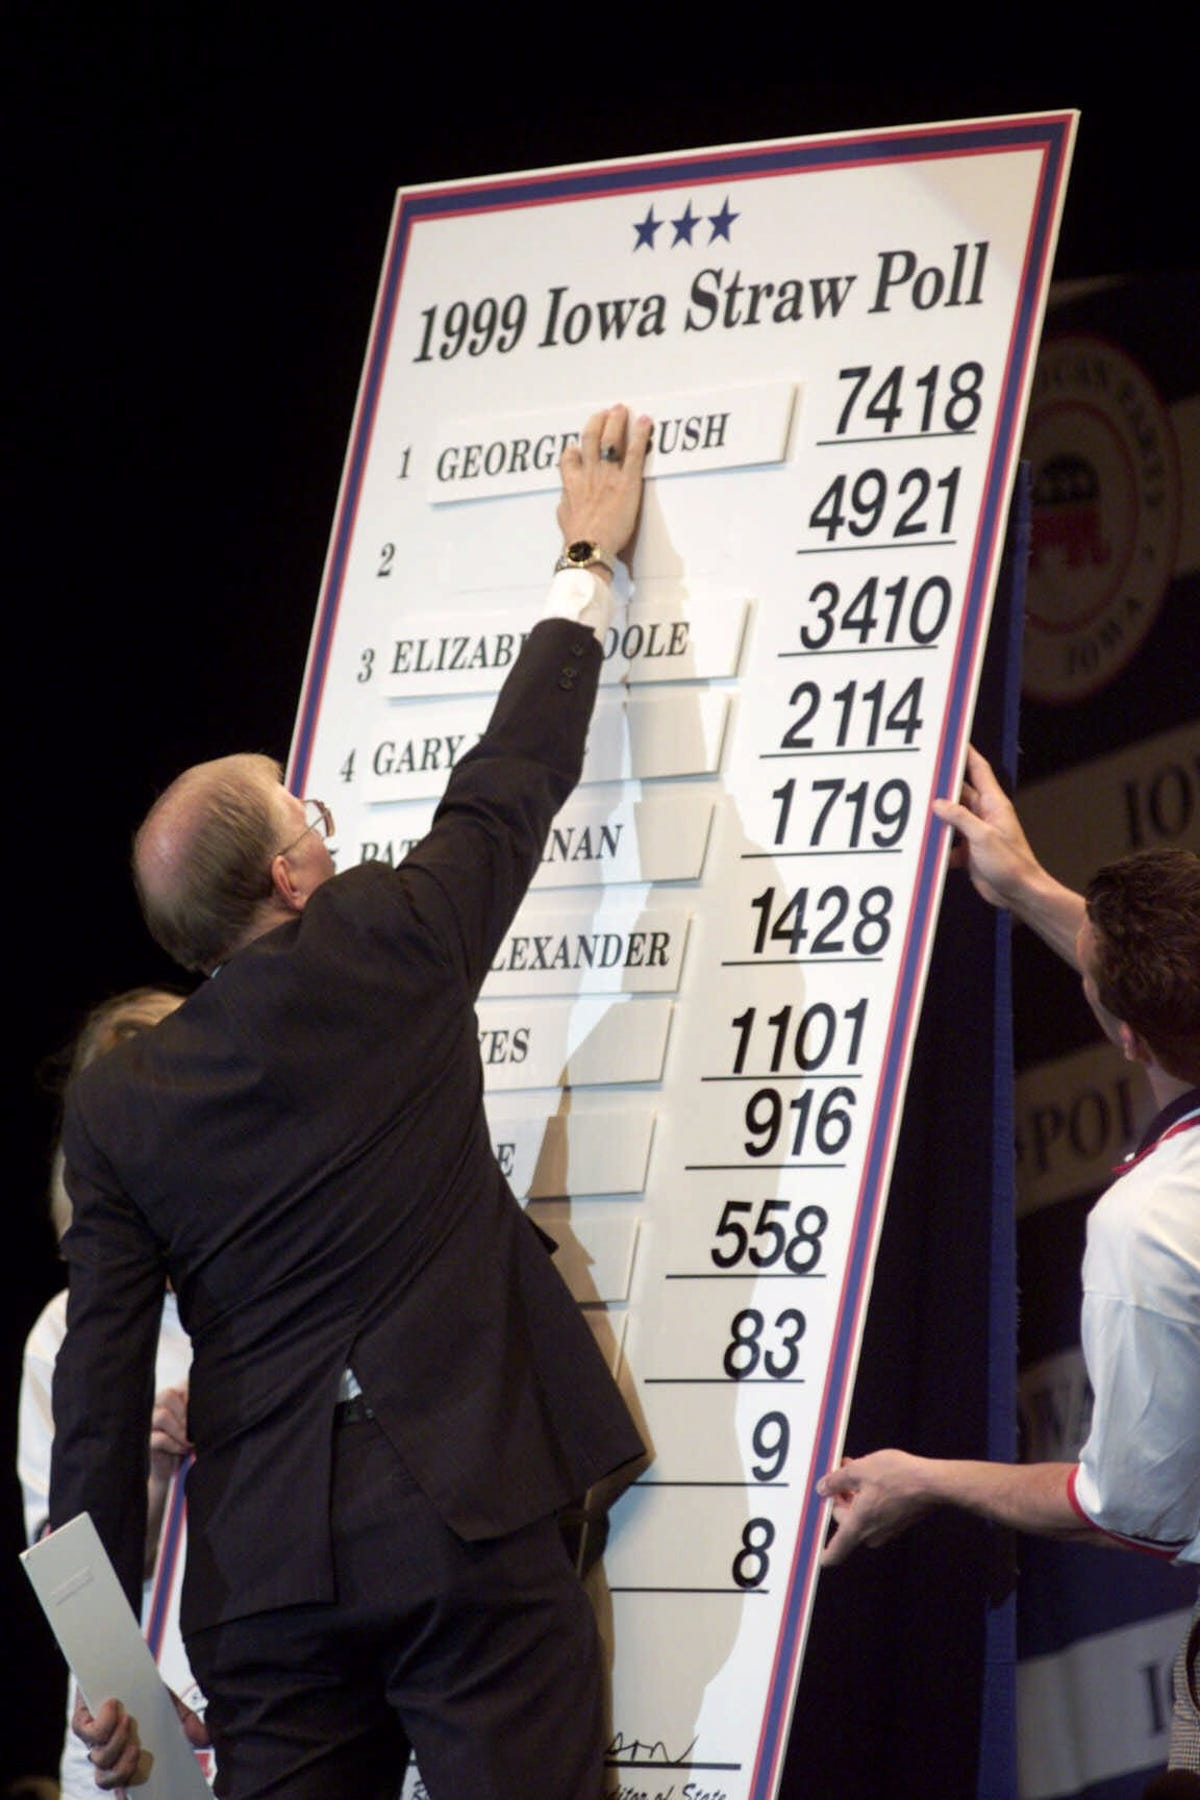 The pros and cons of the Iowa Straw Poll